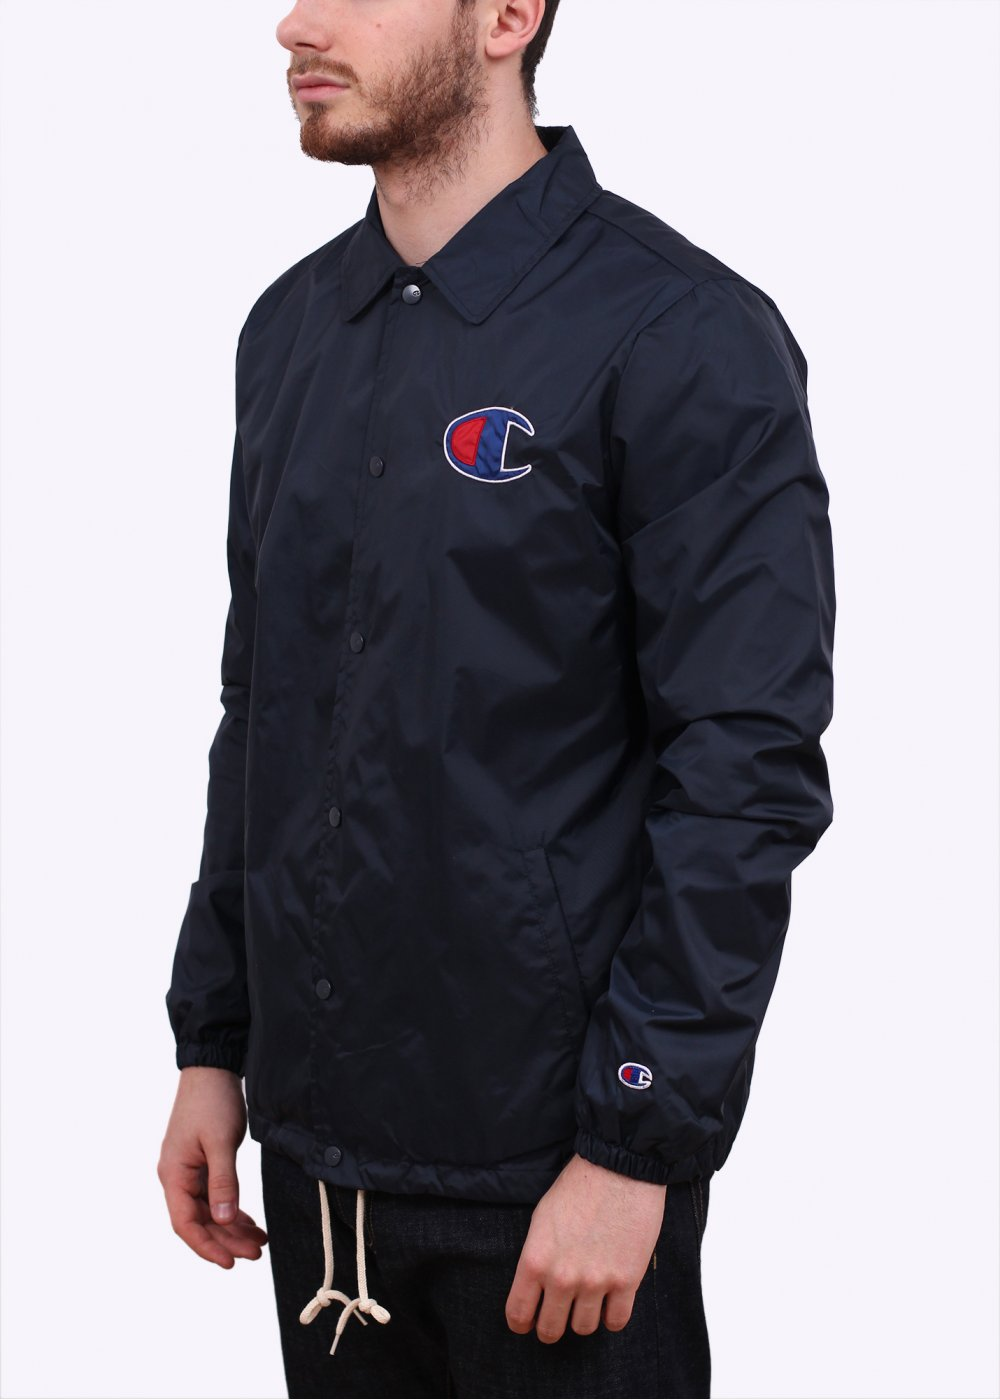 Champion coach jacket navy for Coach jacket